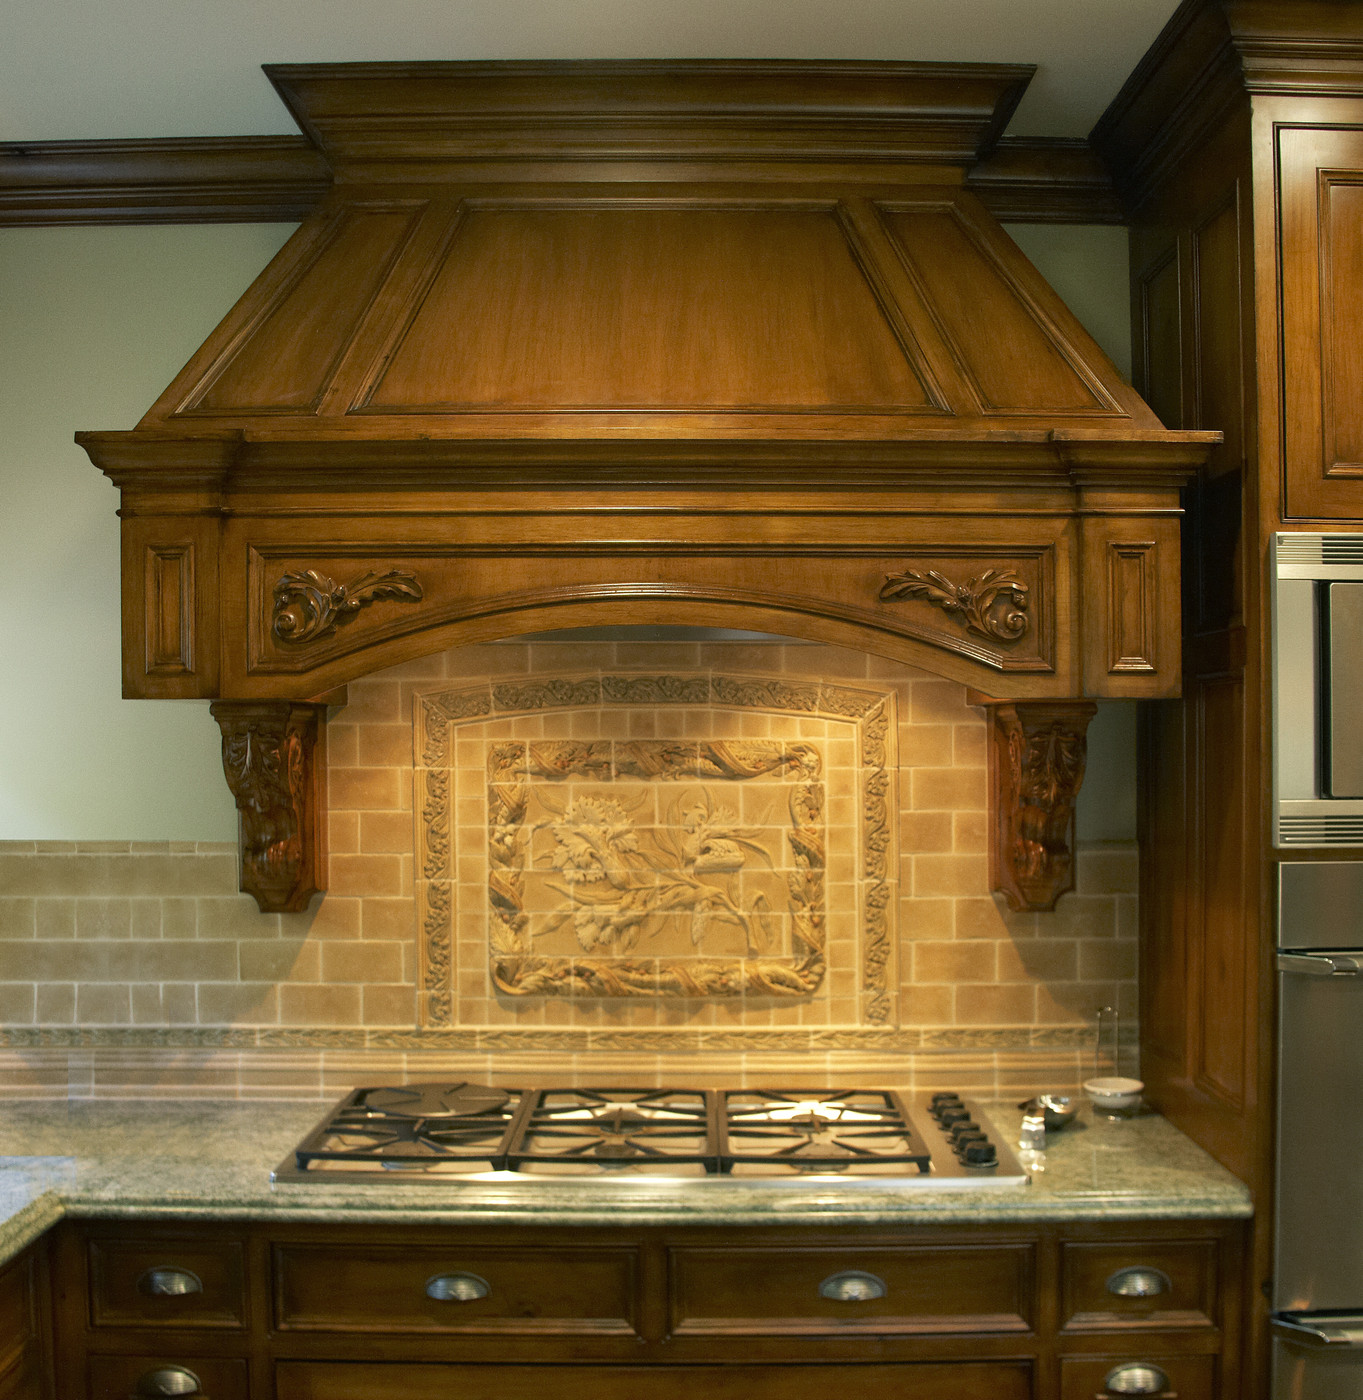 Traditional Kitchen Backsplash Ideas: Traditional Kitchen Photos (107 Of 166